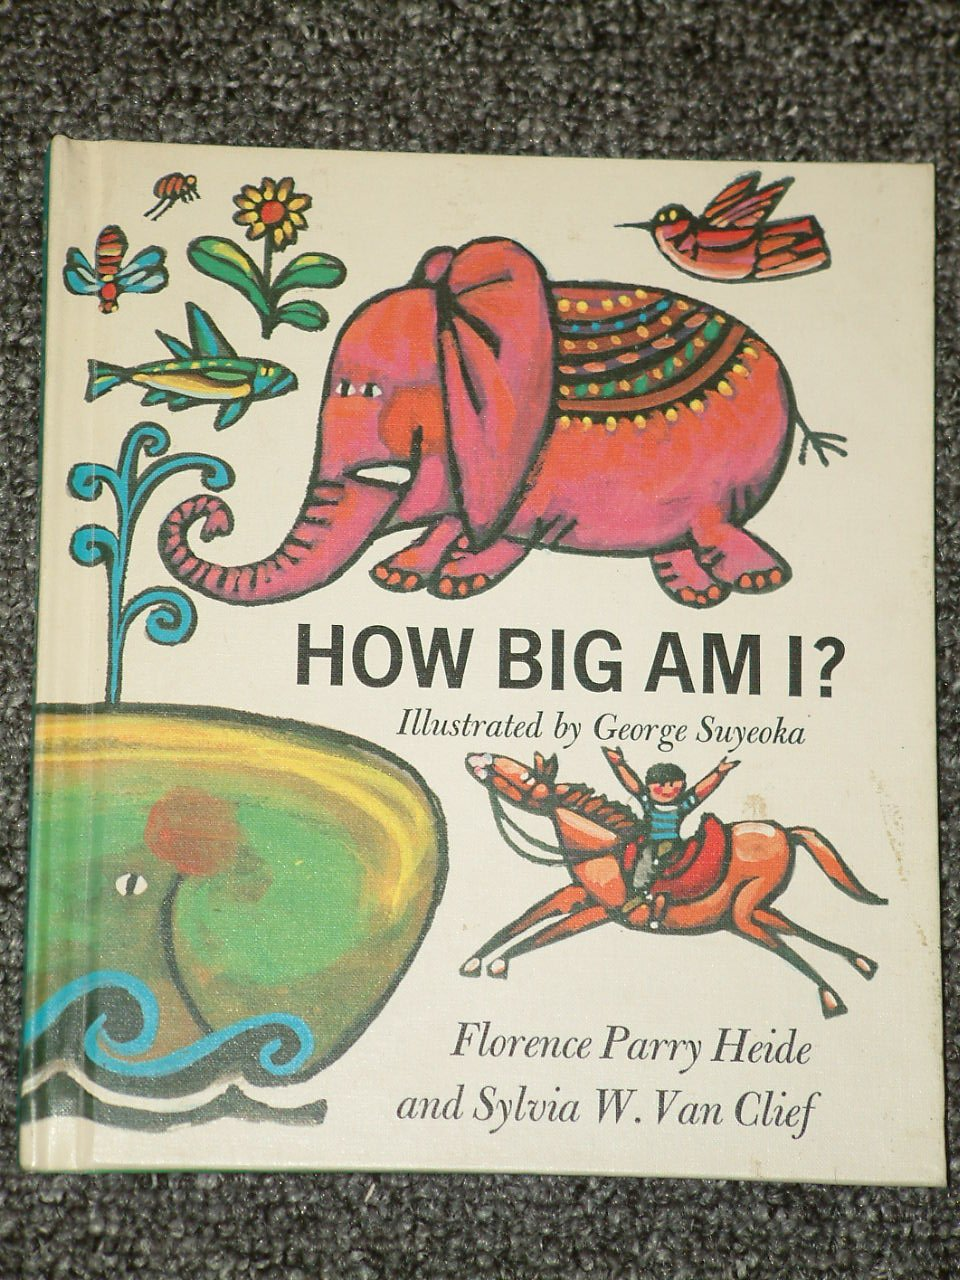 How Big Am I by Florence Parry Heide 1968